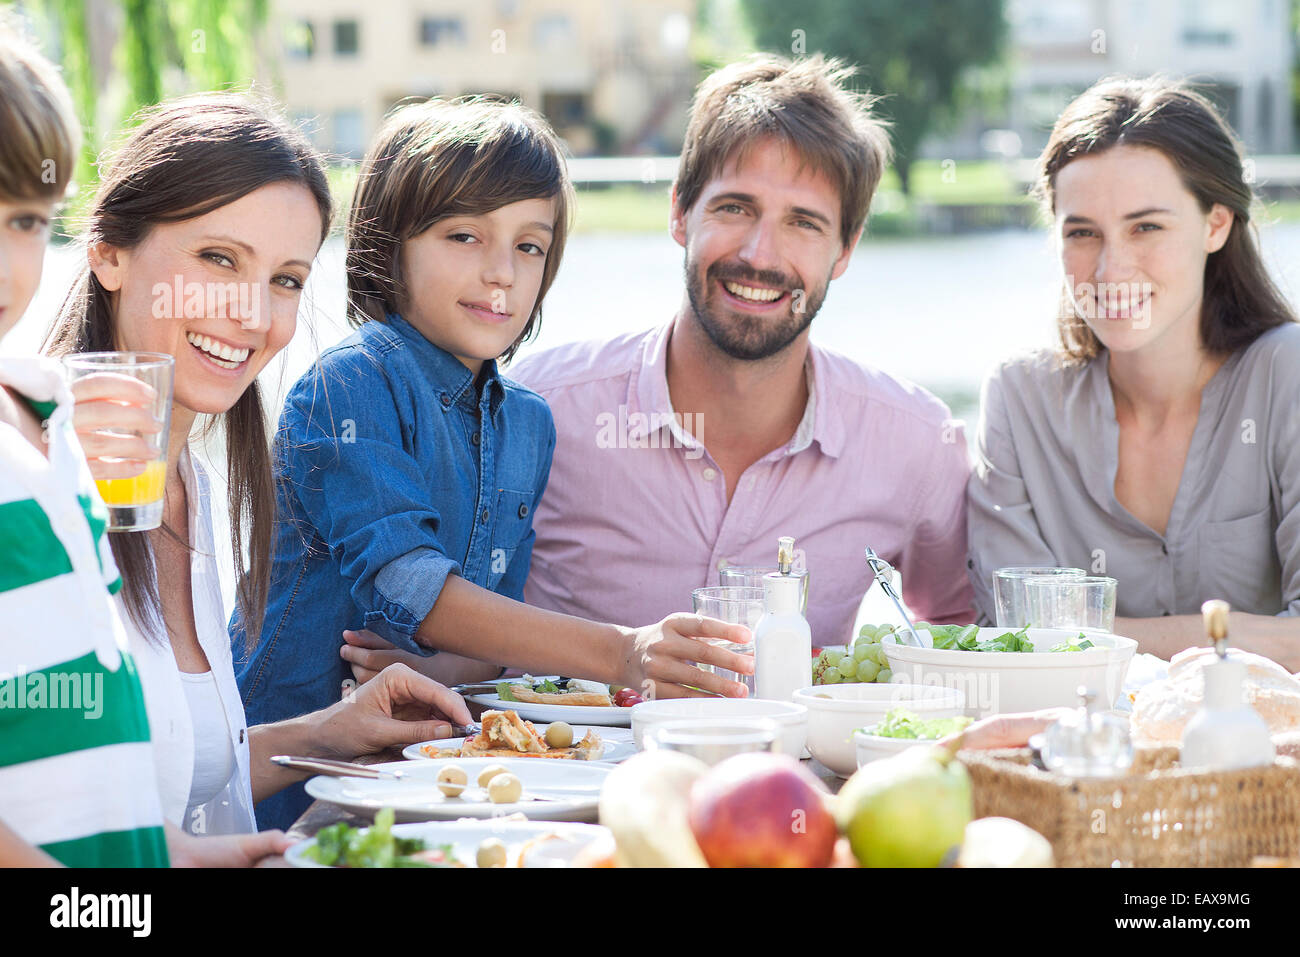 Family eating together outdoors, portrait - Stock Image